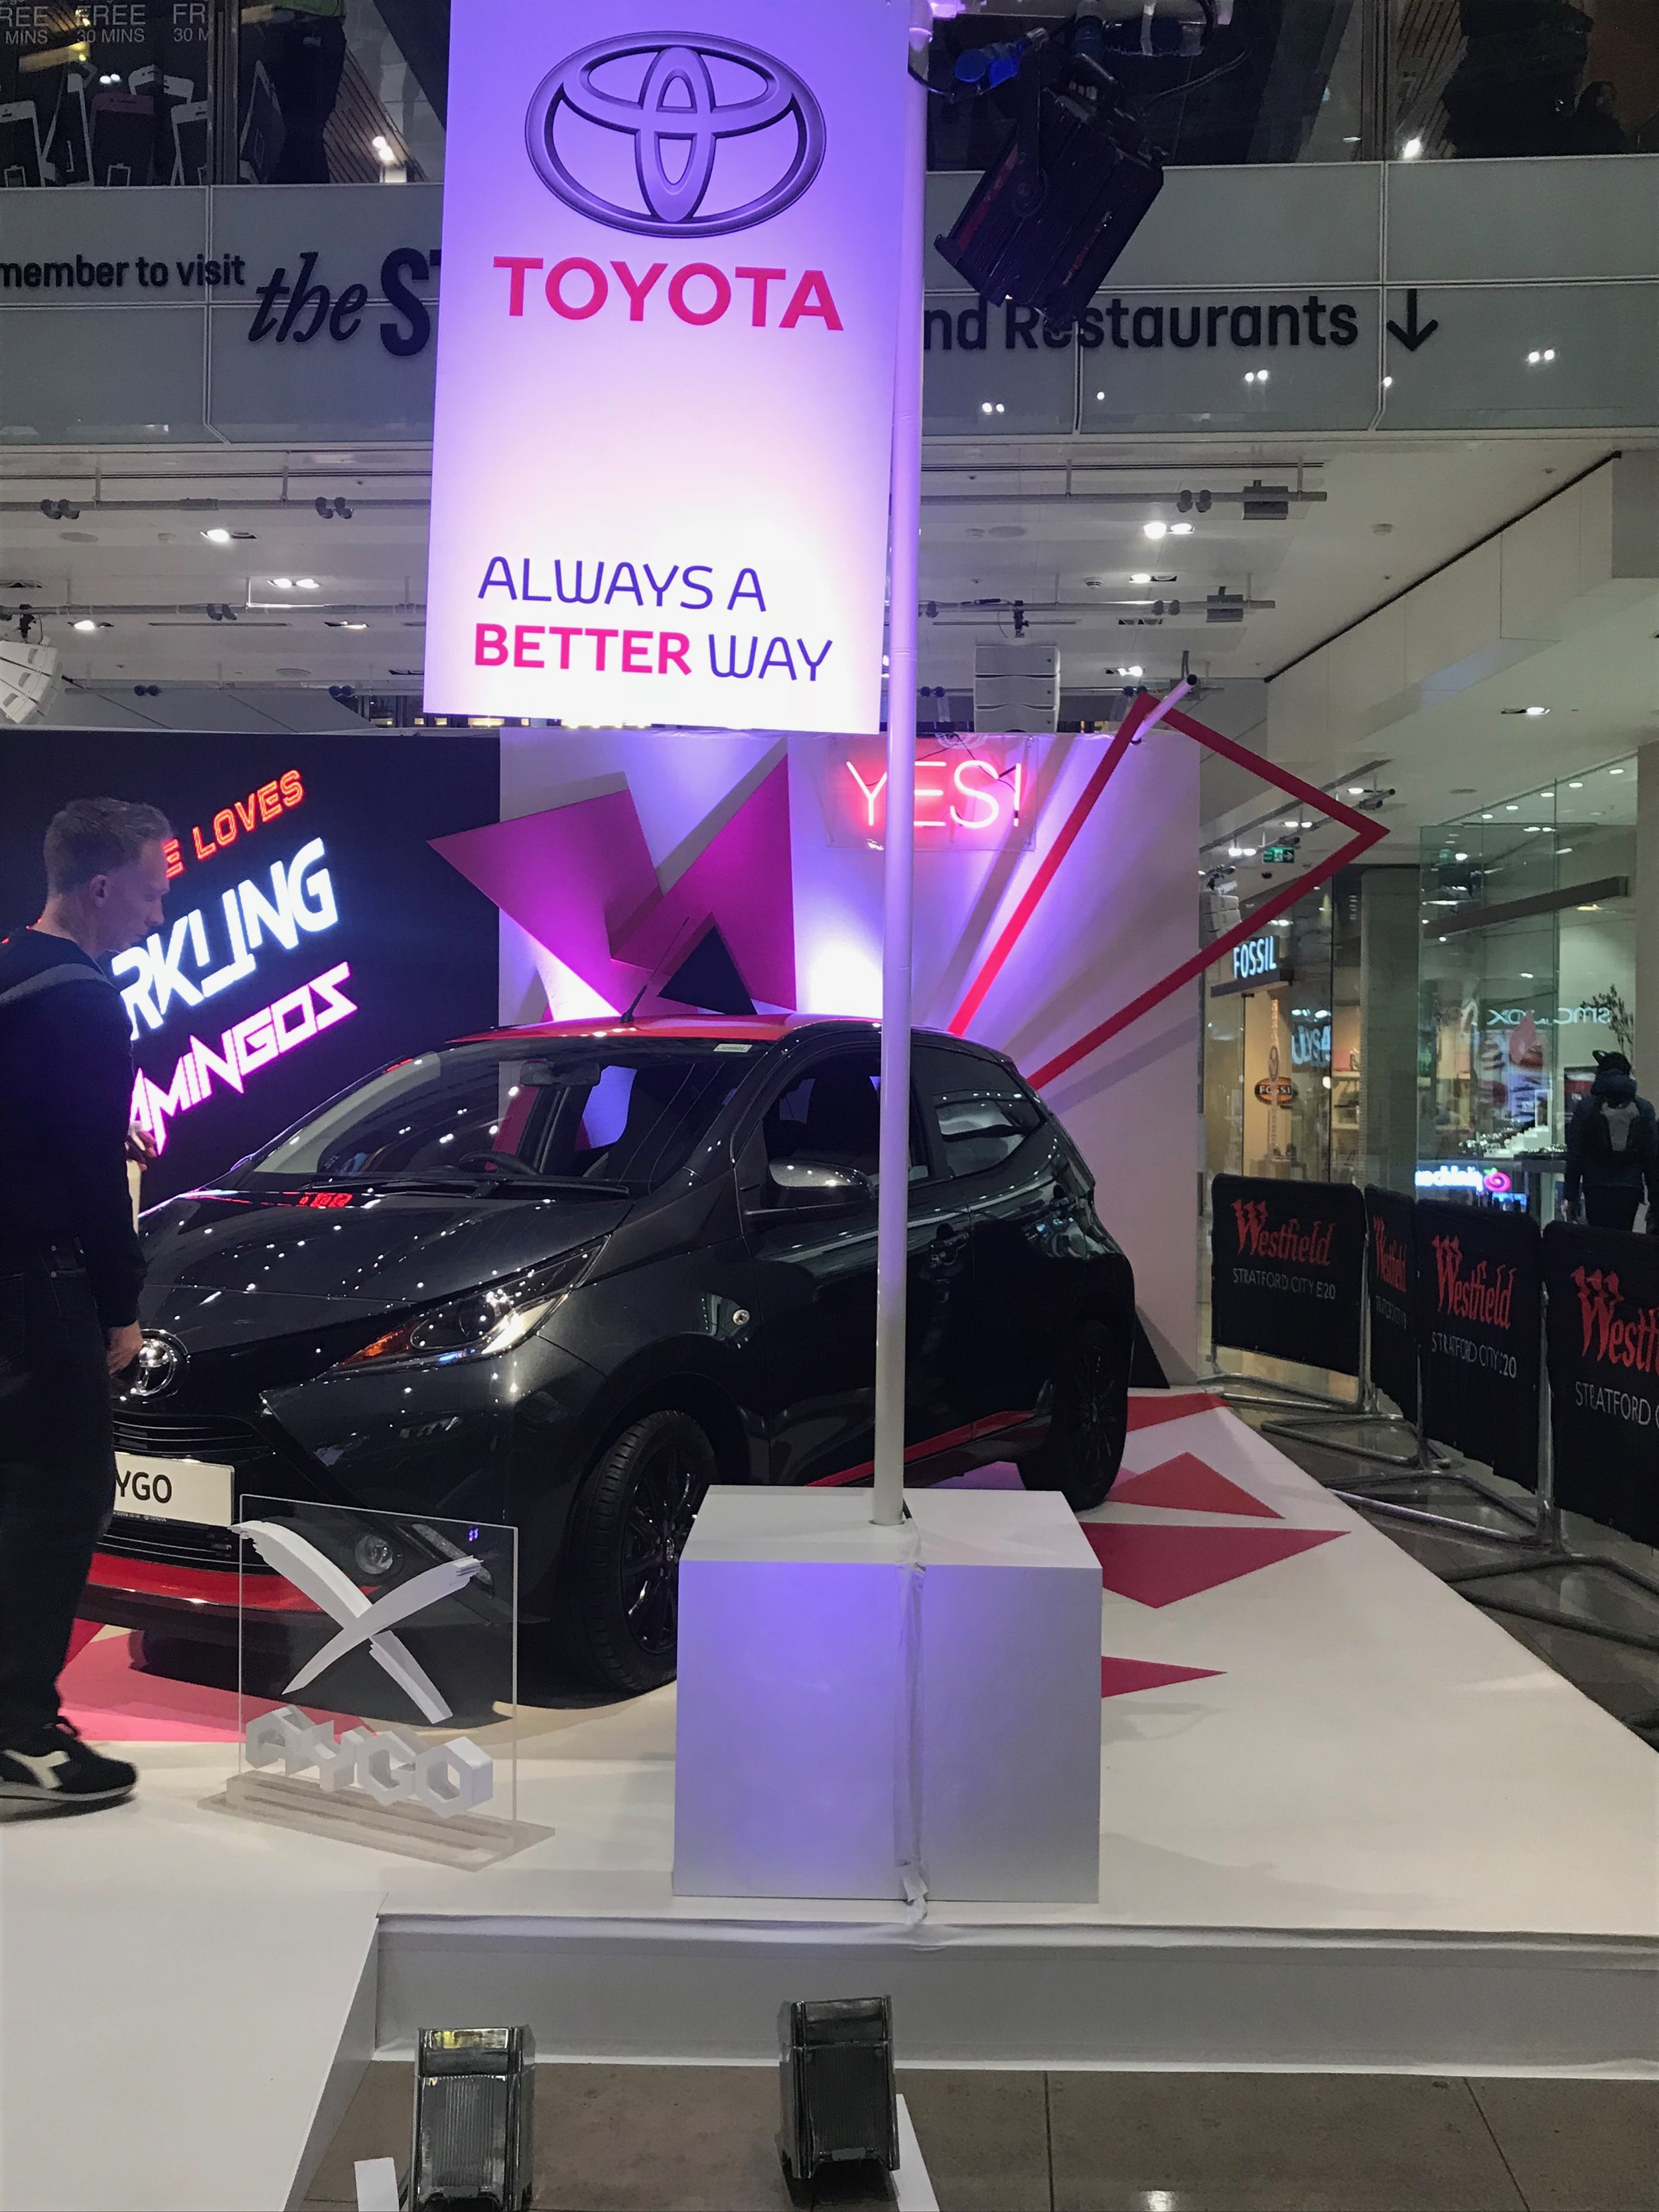 Toyota car with pink triangles and white lights.